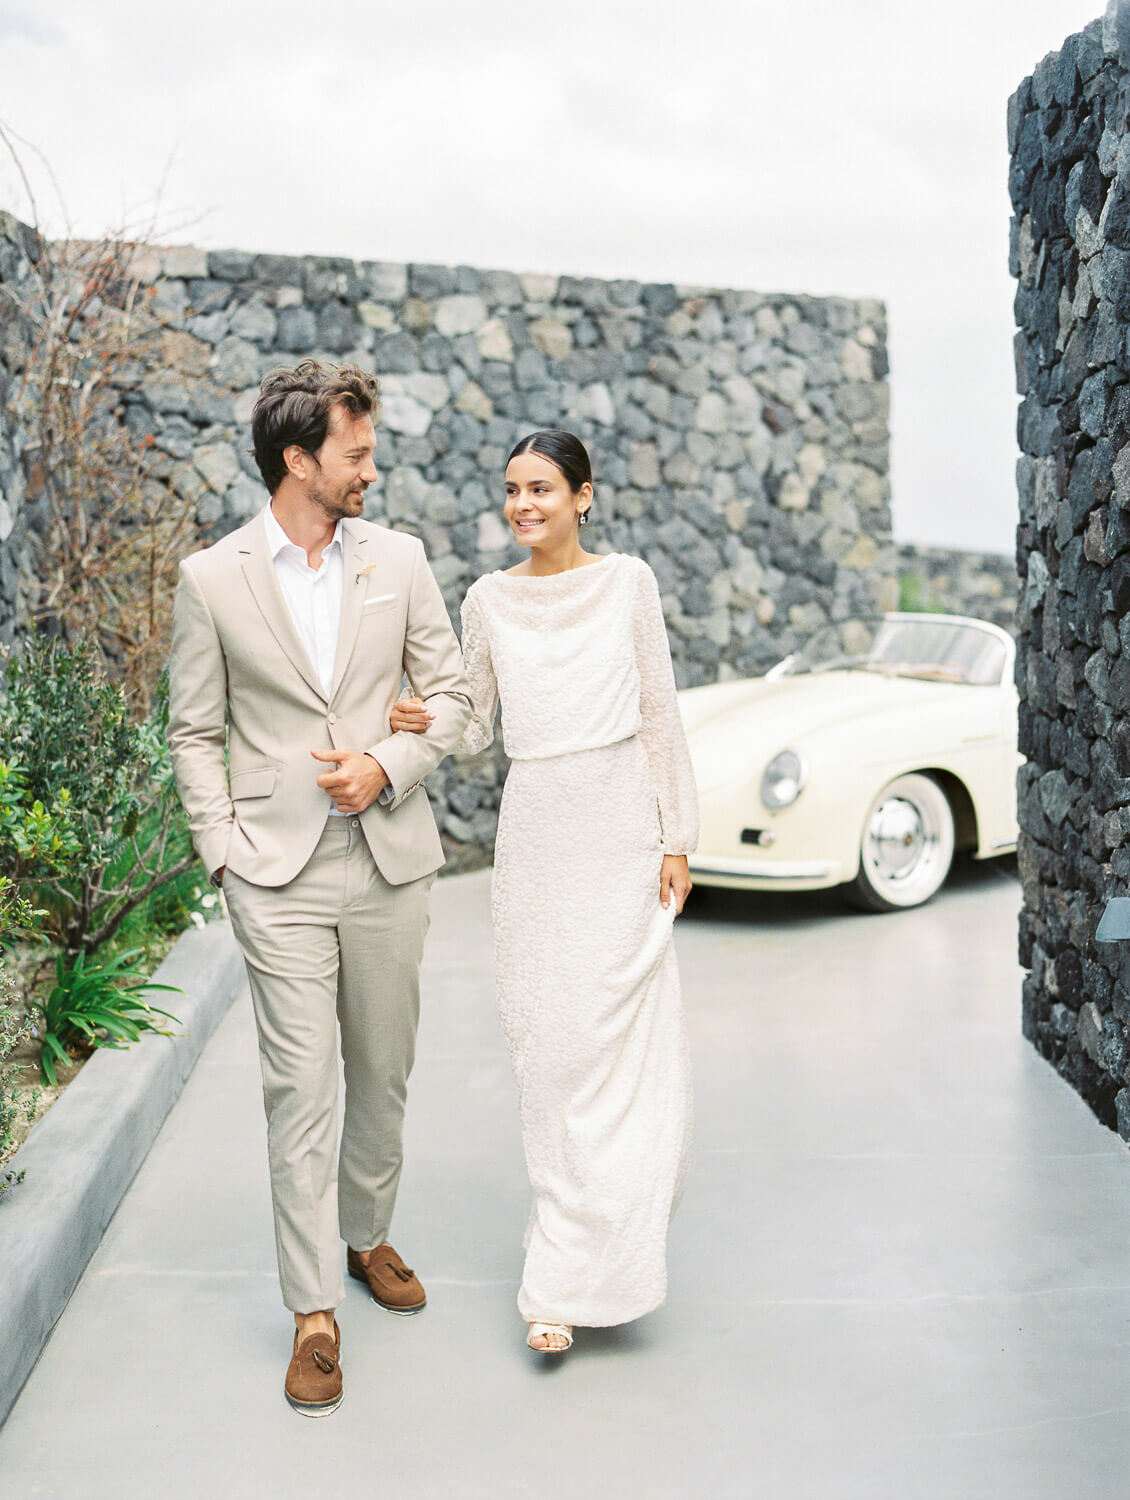 weddings-Erosantorini-photography